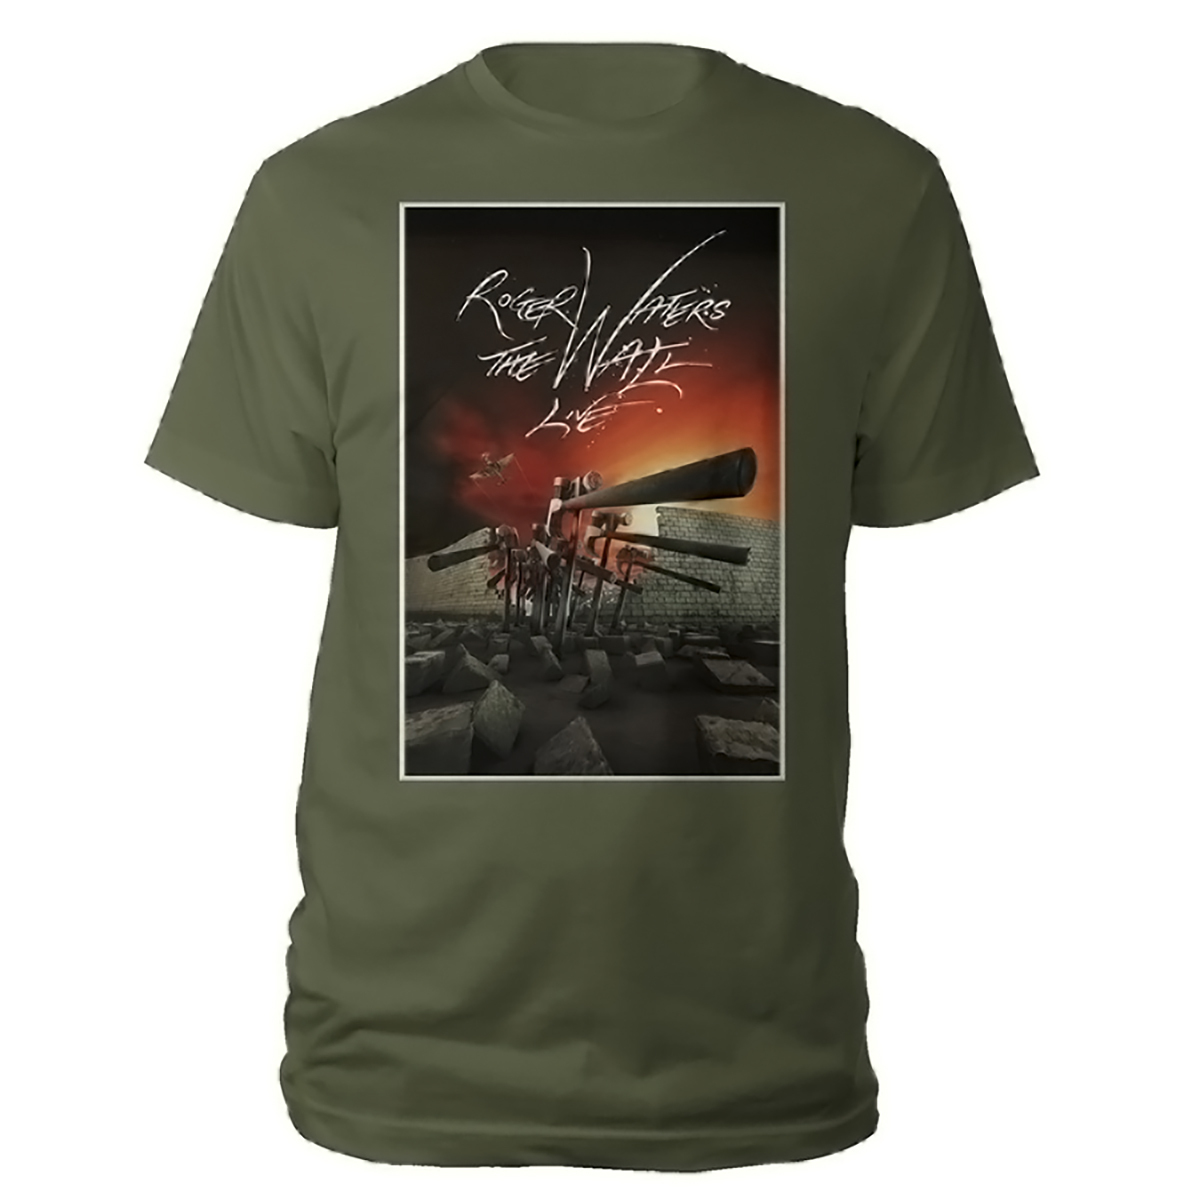 Roger Waters The Wall Live Hammers Tee